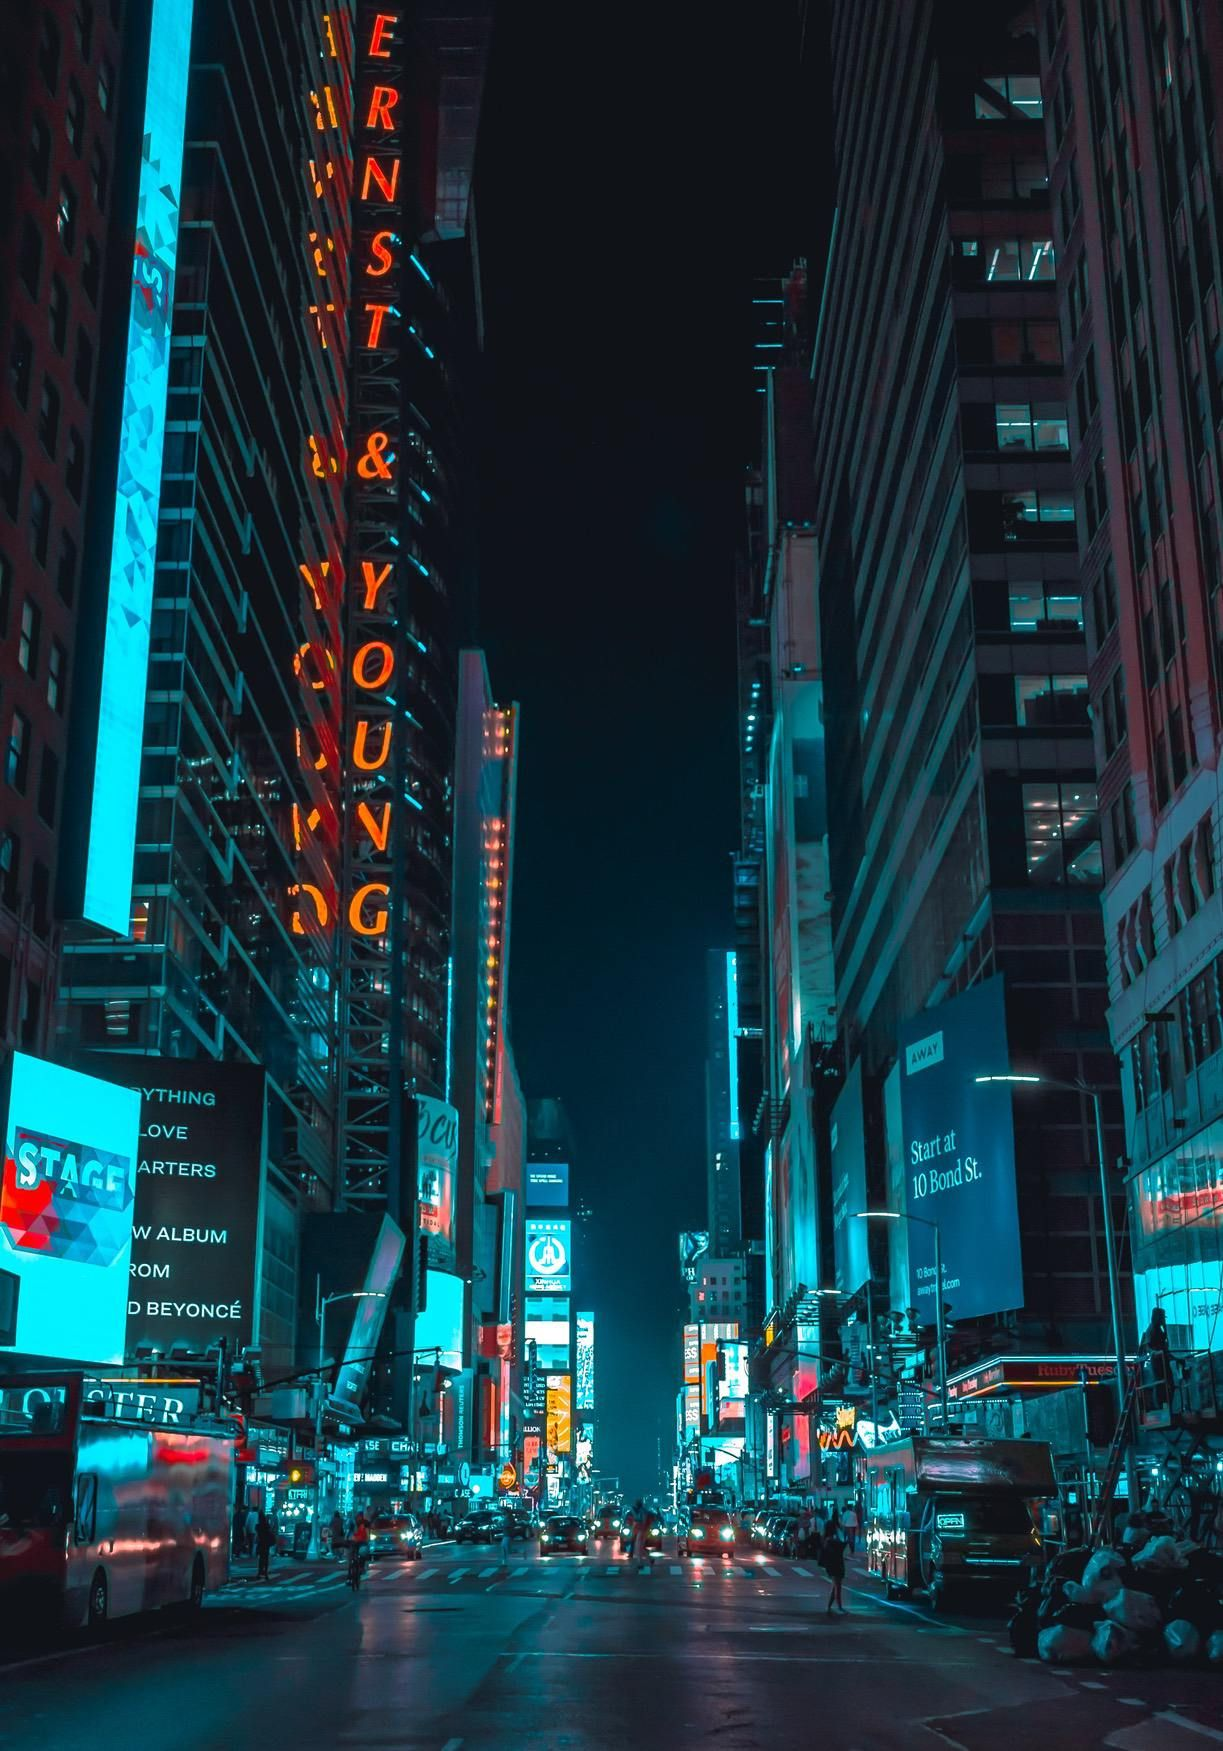 50 Free Trendy Neon Wallpapers For Iphone Hd Download City Lights Wallpaper Neon Wallpaper City Wallpaper